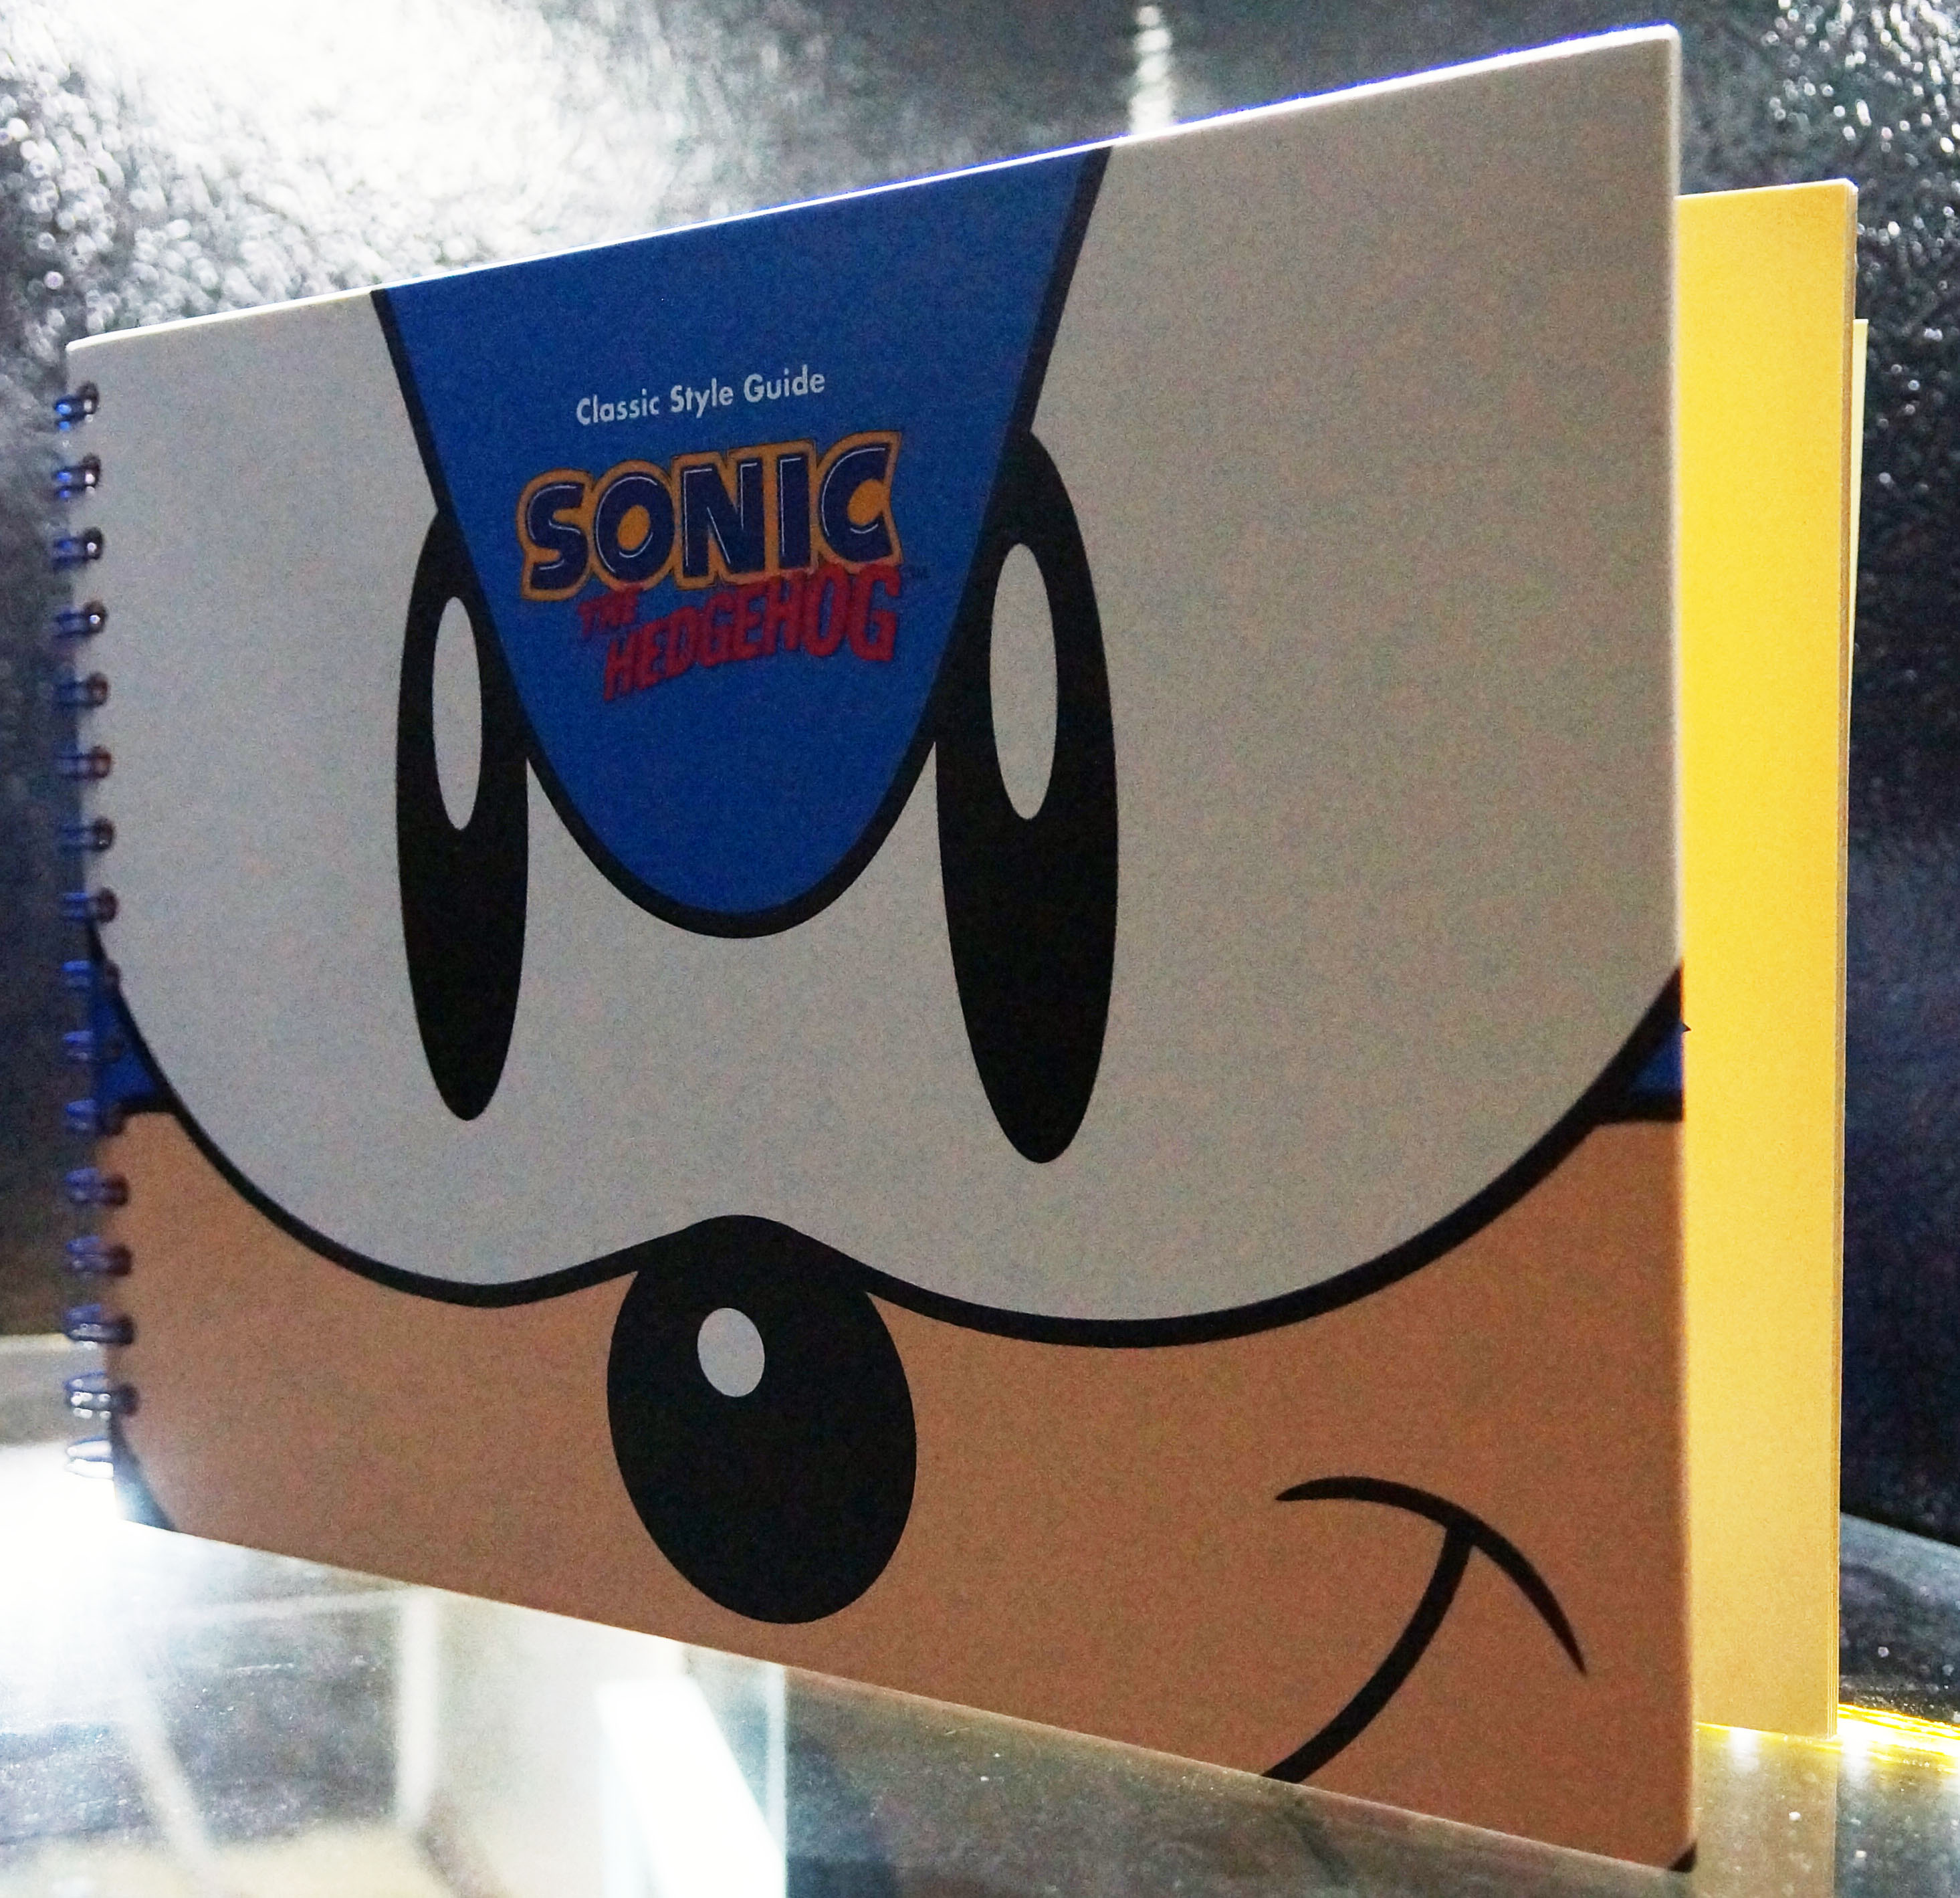 A Not So Little Look At Sonic The Hedgehog 2014 Classic Style Guide The Sonic Stadium